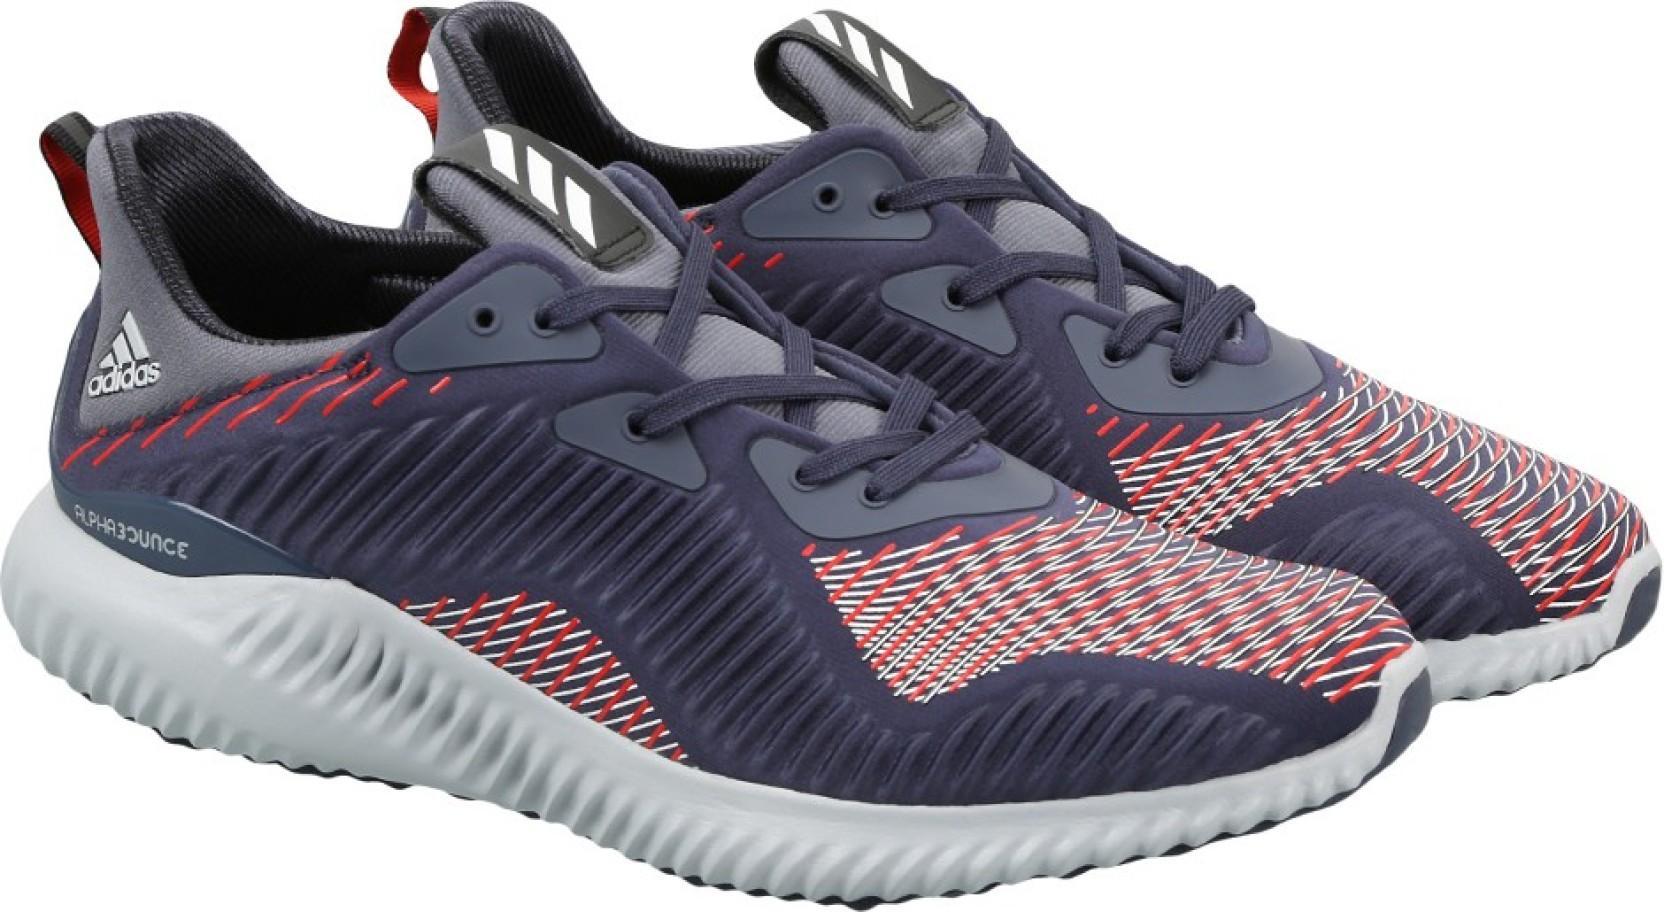 782d80f9794dc ADIDAS ALPHABOUNCE HPC M Running Shoes For Men - Buy MIDGRE FTWWHT ...